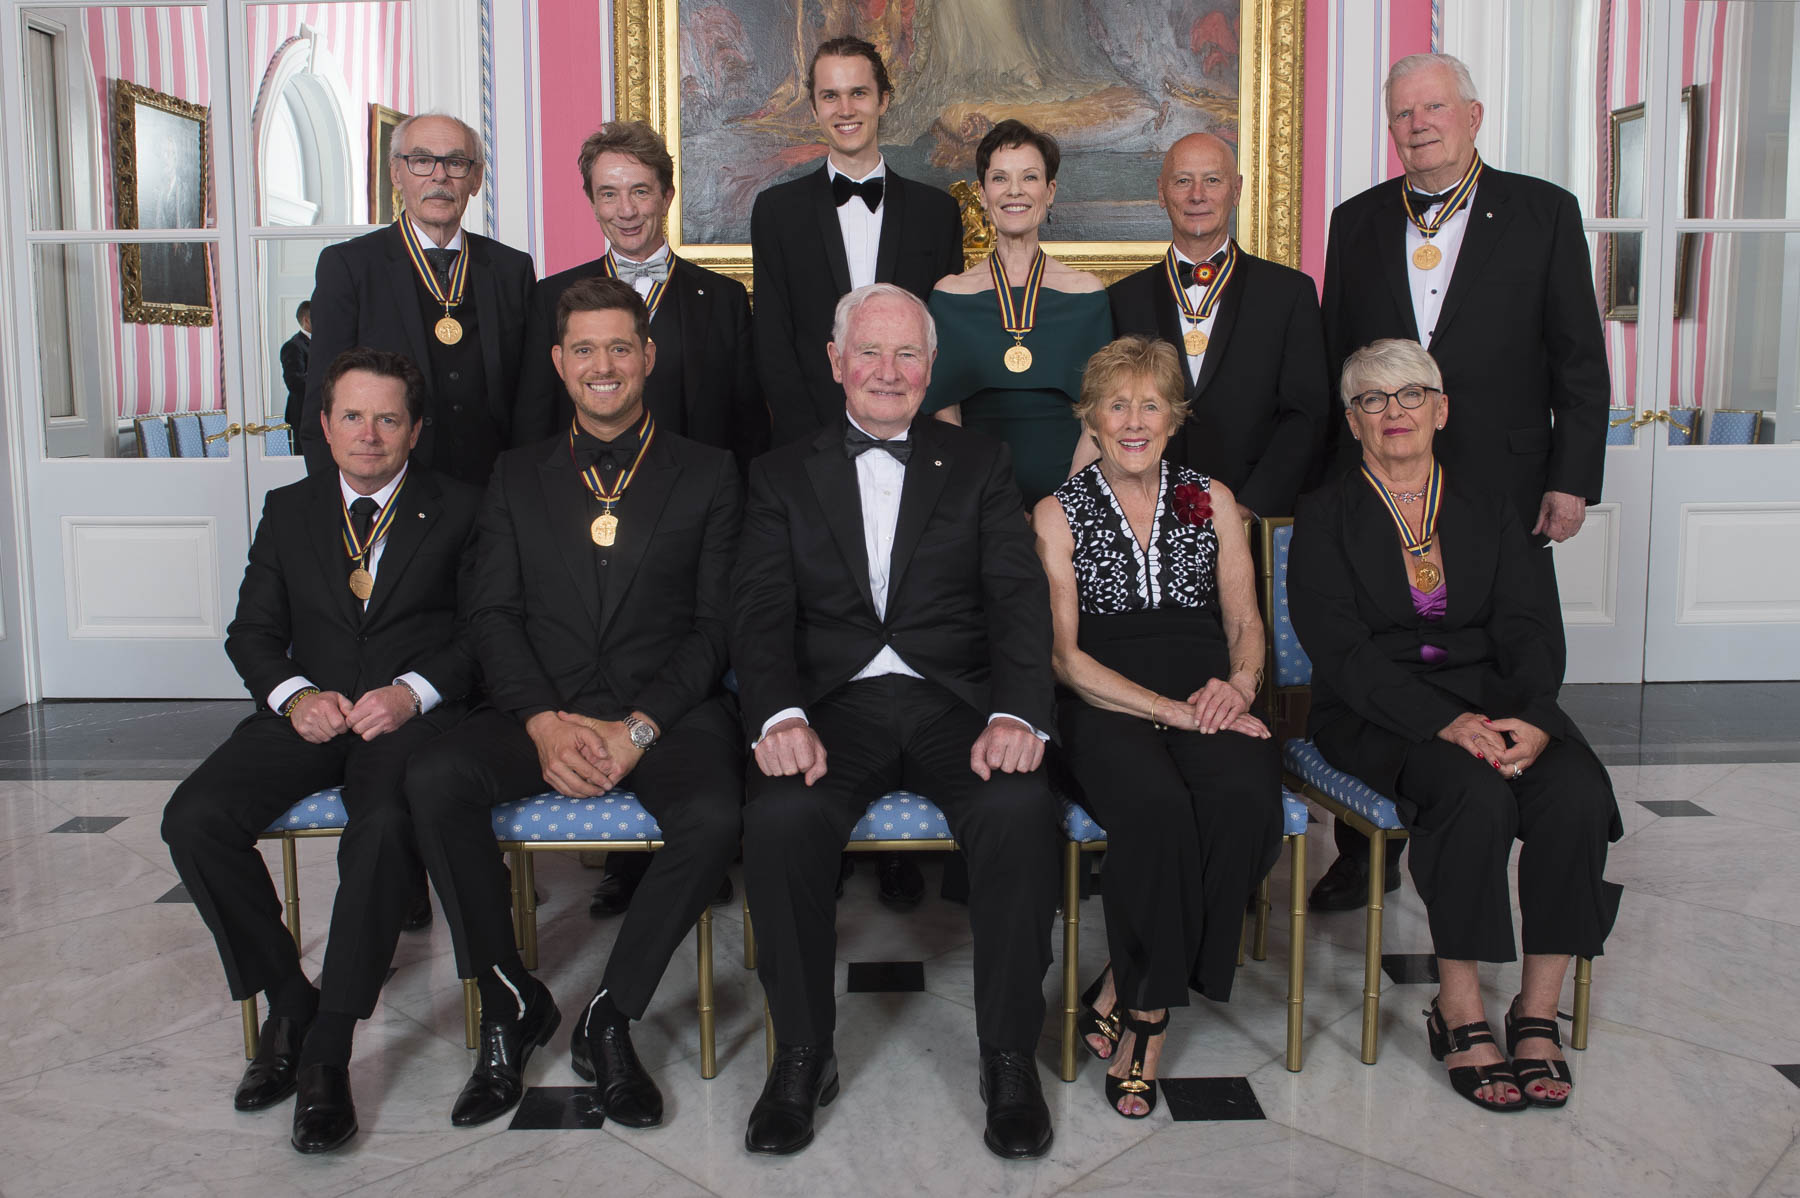 Their Excellencies posed for a picture in the Tent room with the Governor General's Performing Arts Awards Laureates.